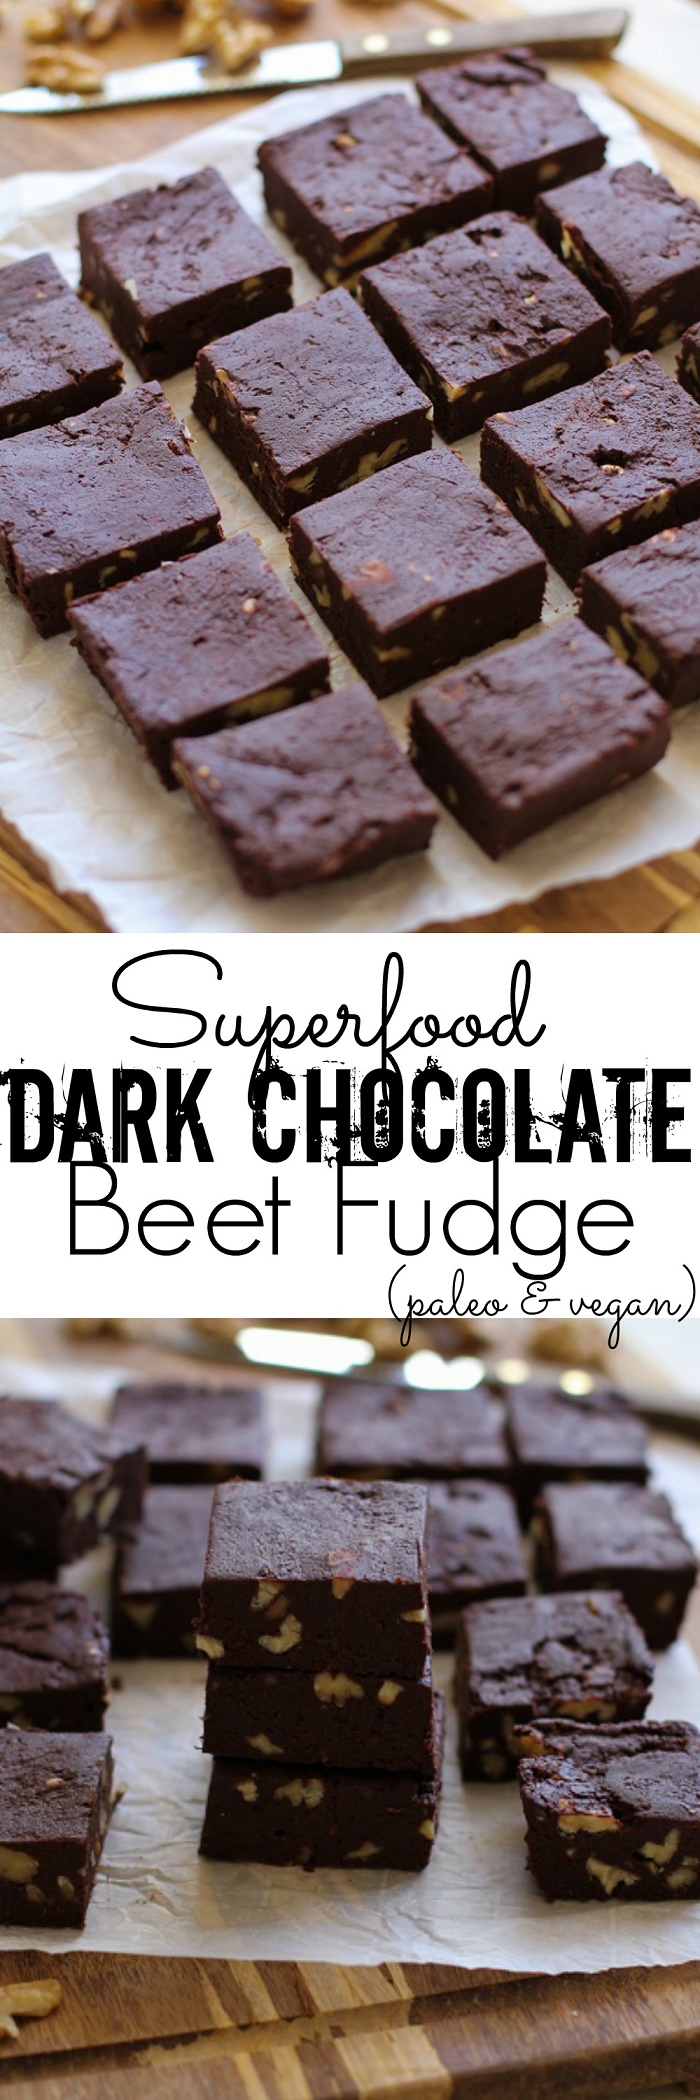 Healthy Dark Chocolate Fudge with Beets and Walnuts - dairy-free, refined sugar-free, and healthy! | TheRoastedRoot.net #superfood #recipe #dessert #vegan #paleo